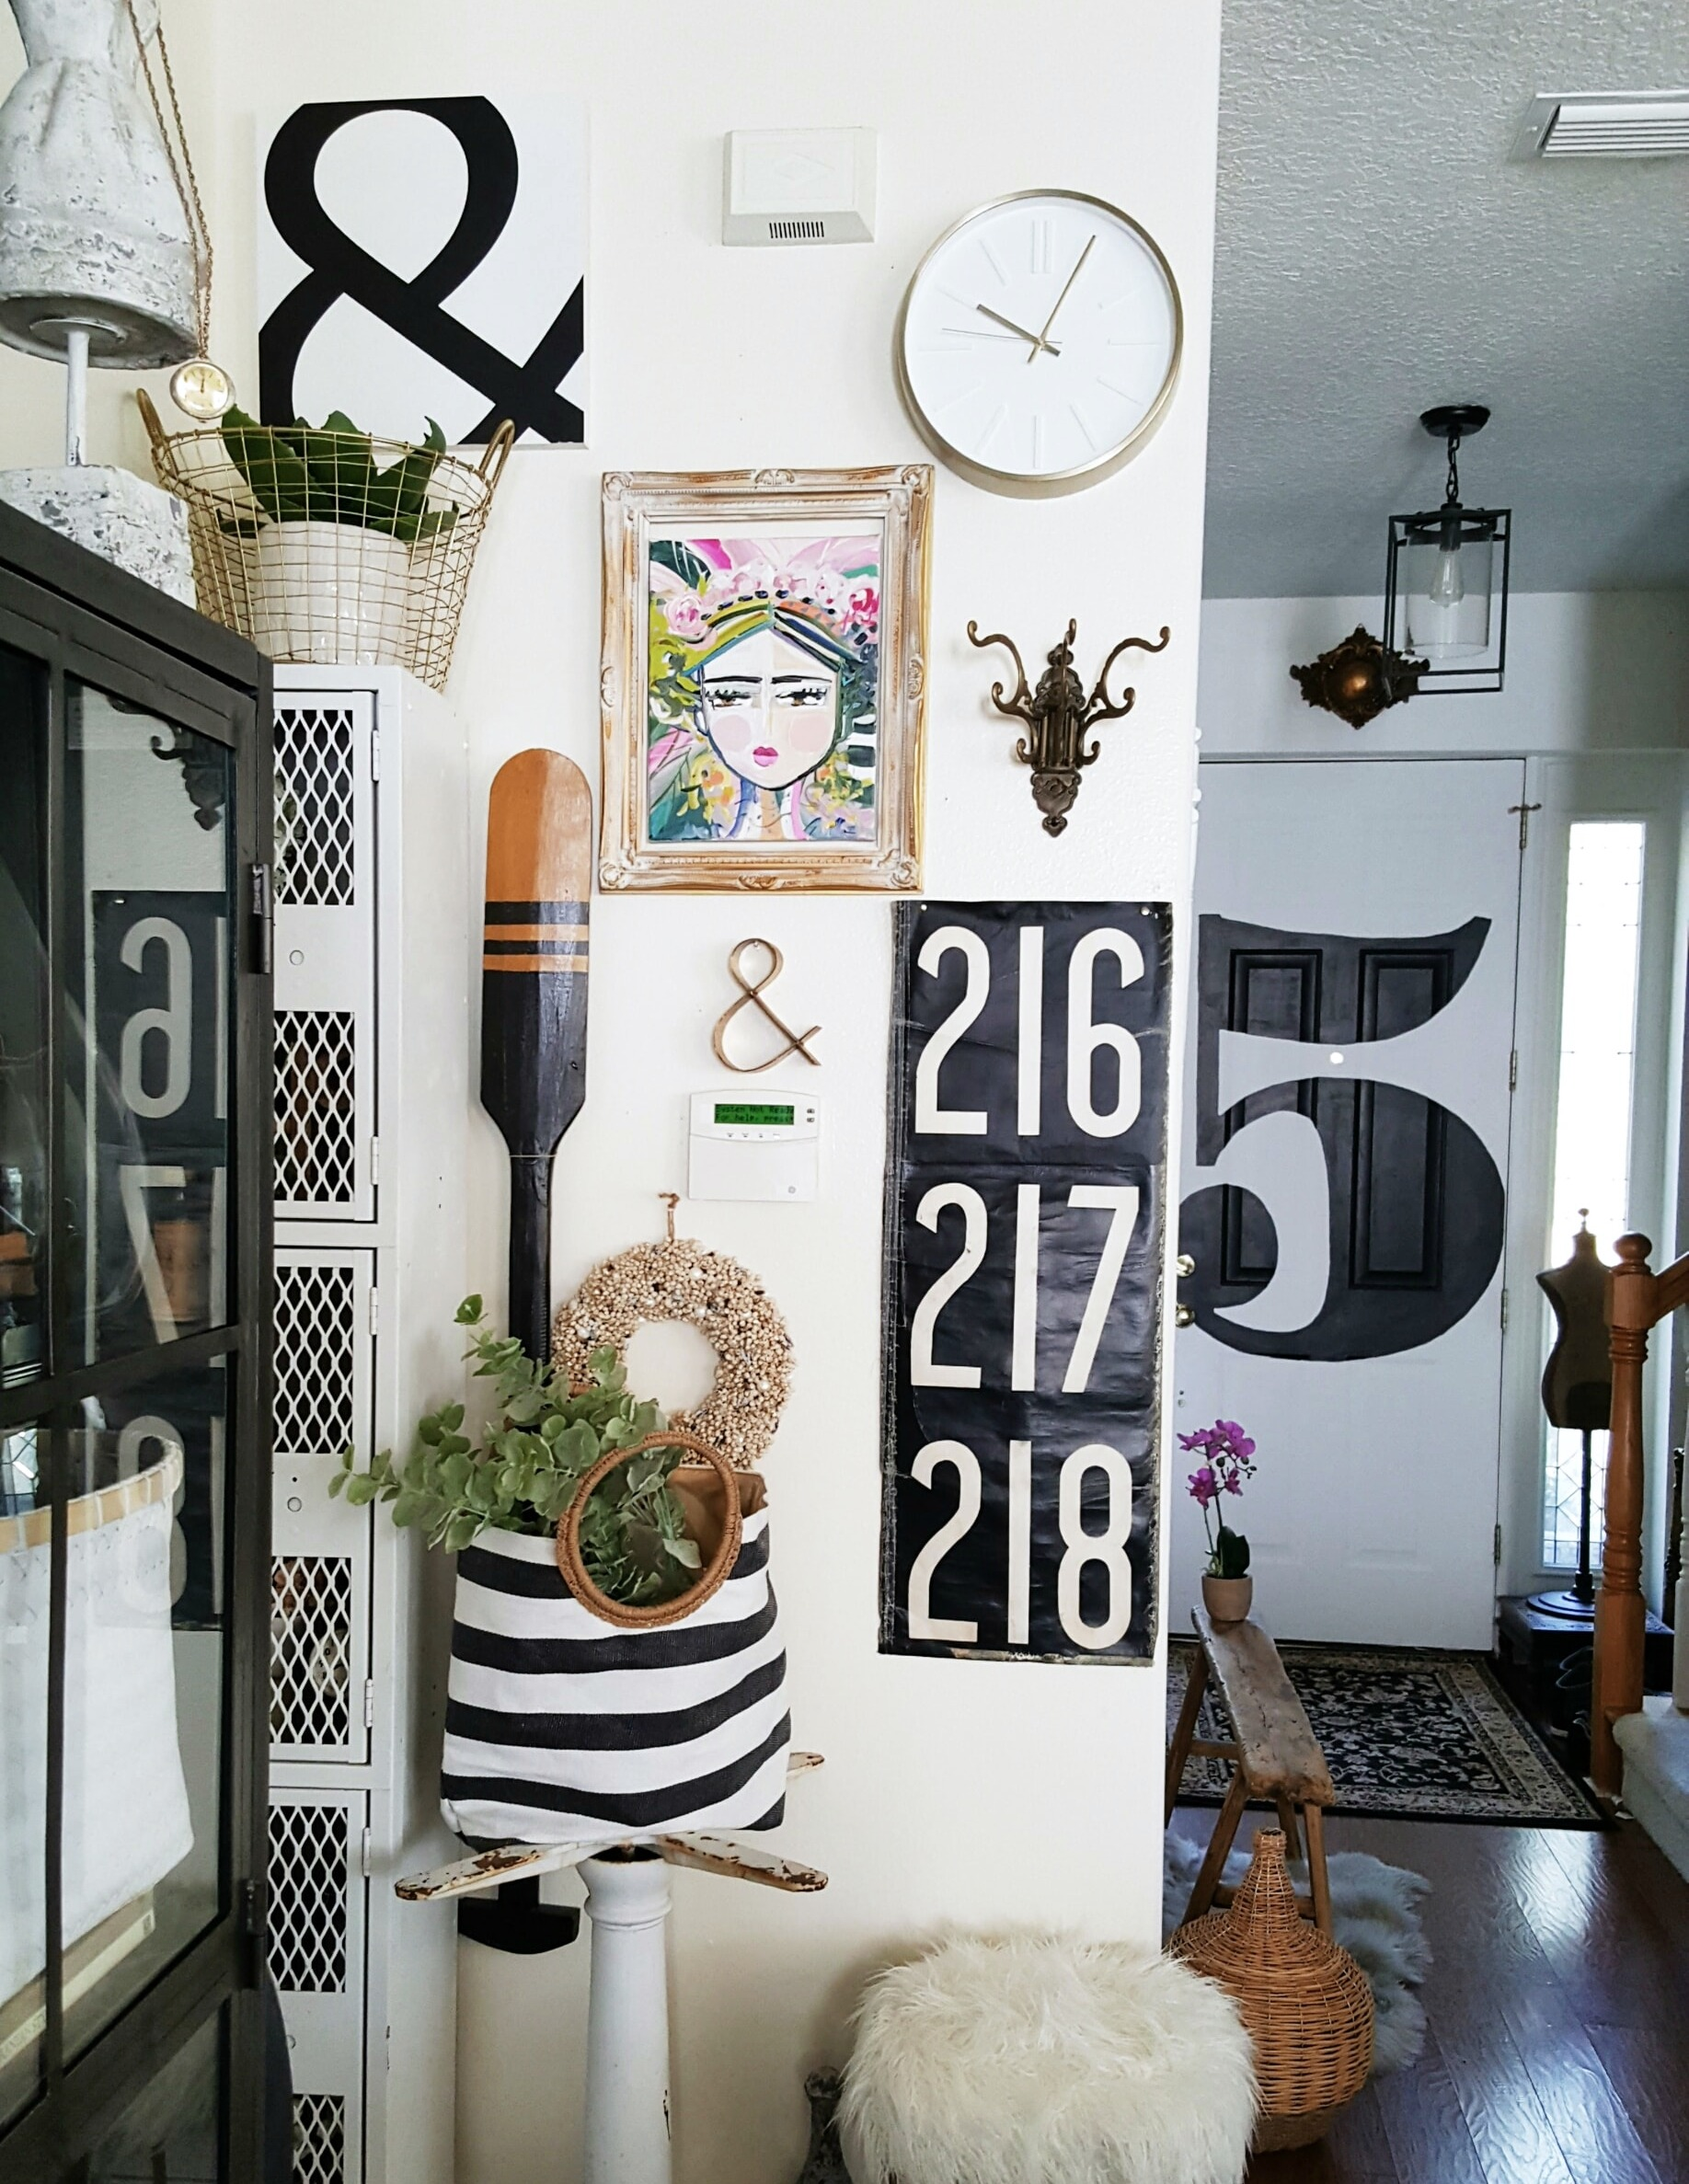 Eclectic Collected Vintage Modern Home Tour - Fox Hollow Cottage